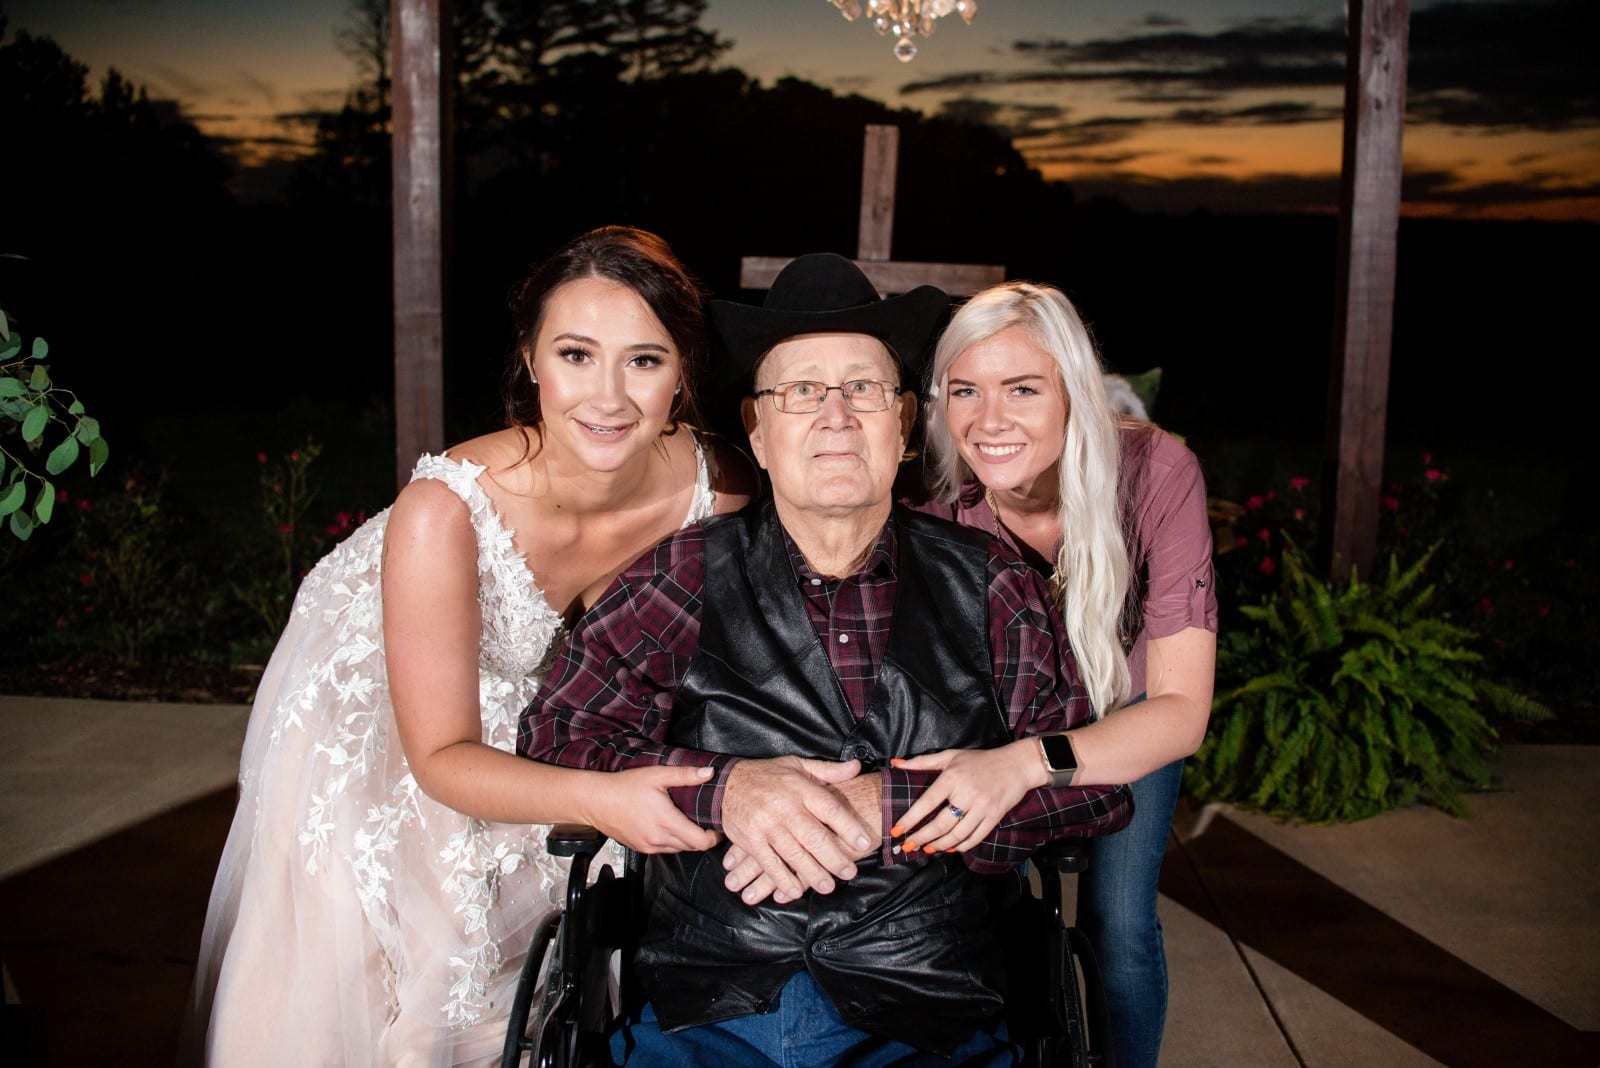 Bride Ties The Knot In Front Of Dying Granddad After Another Woman Gave Her The Venue For Free